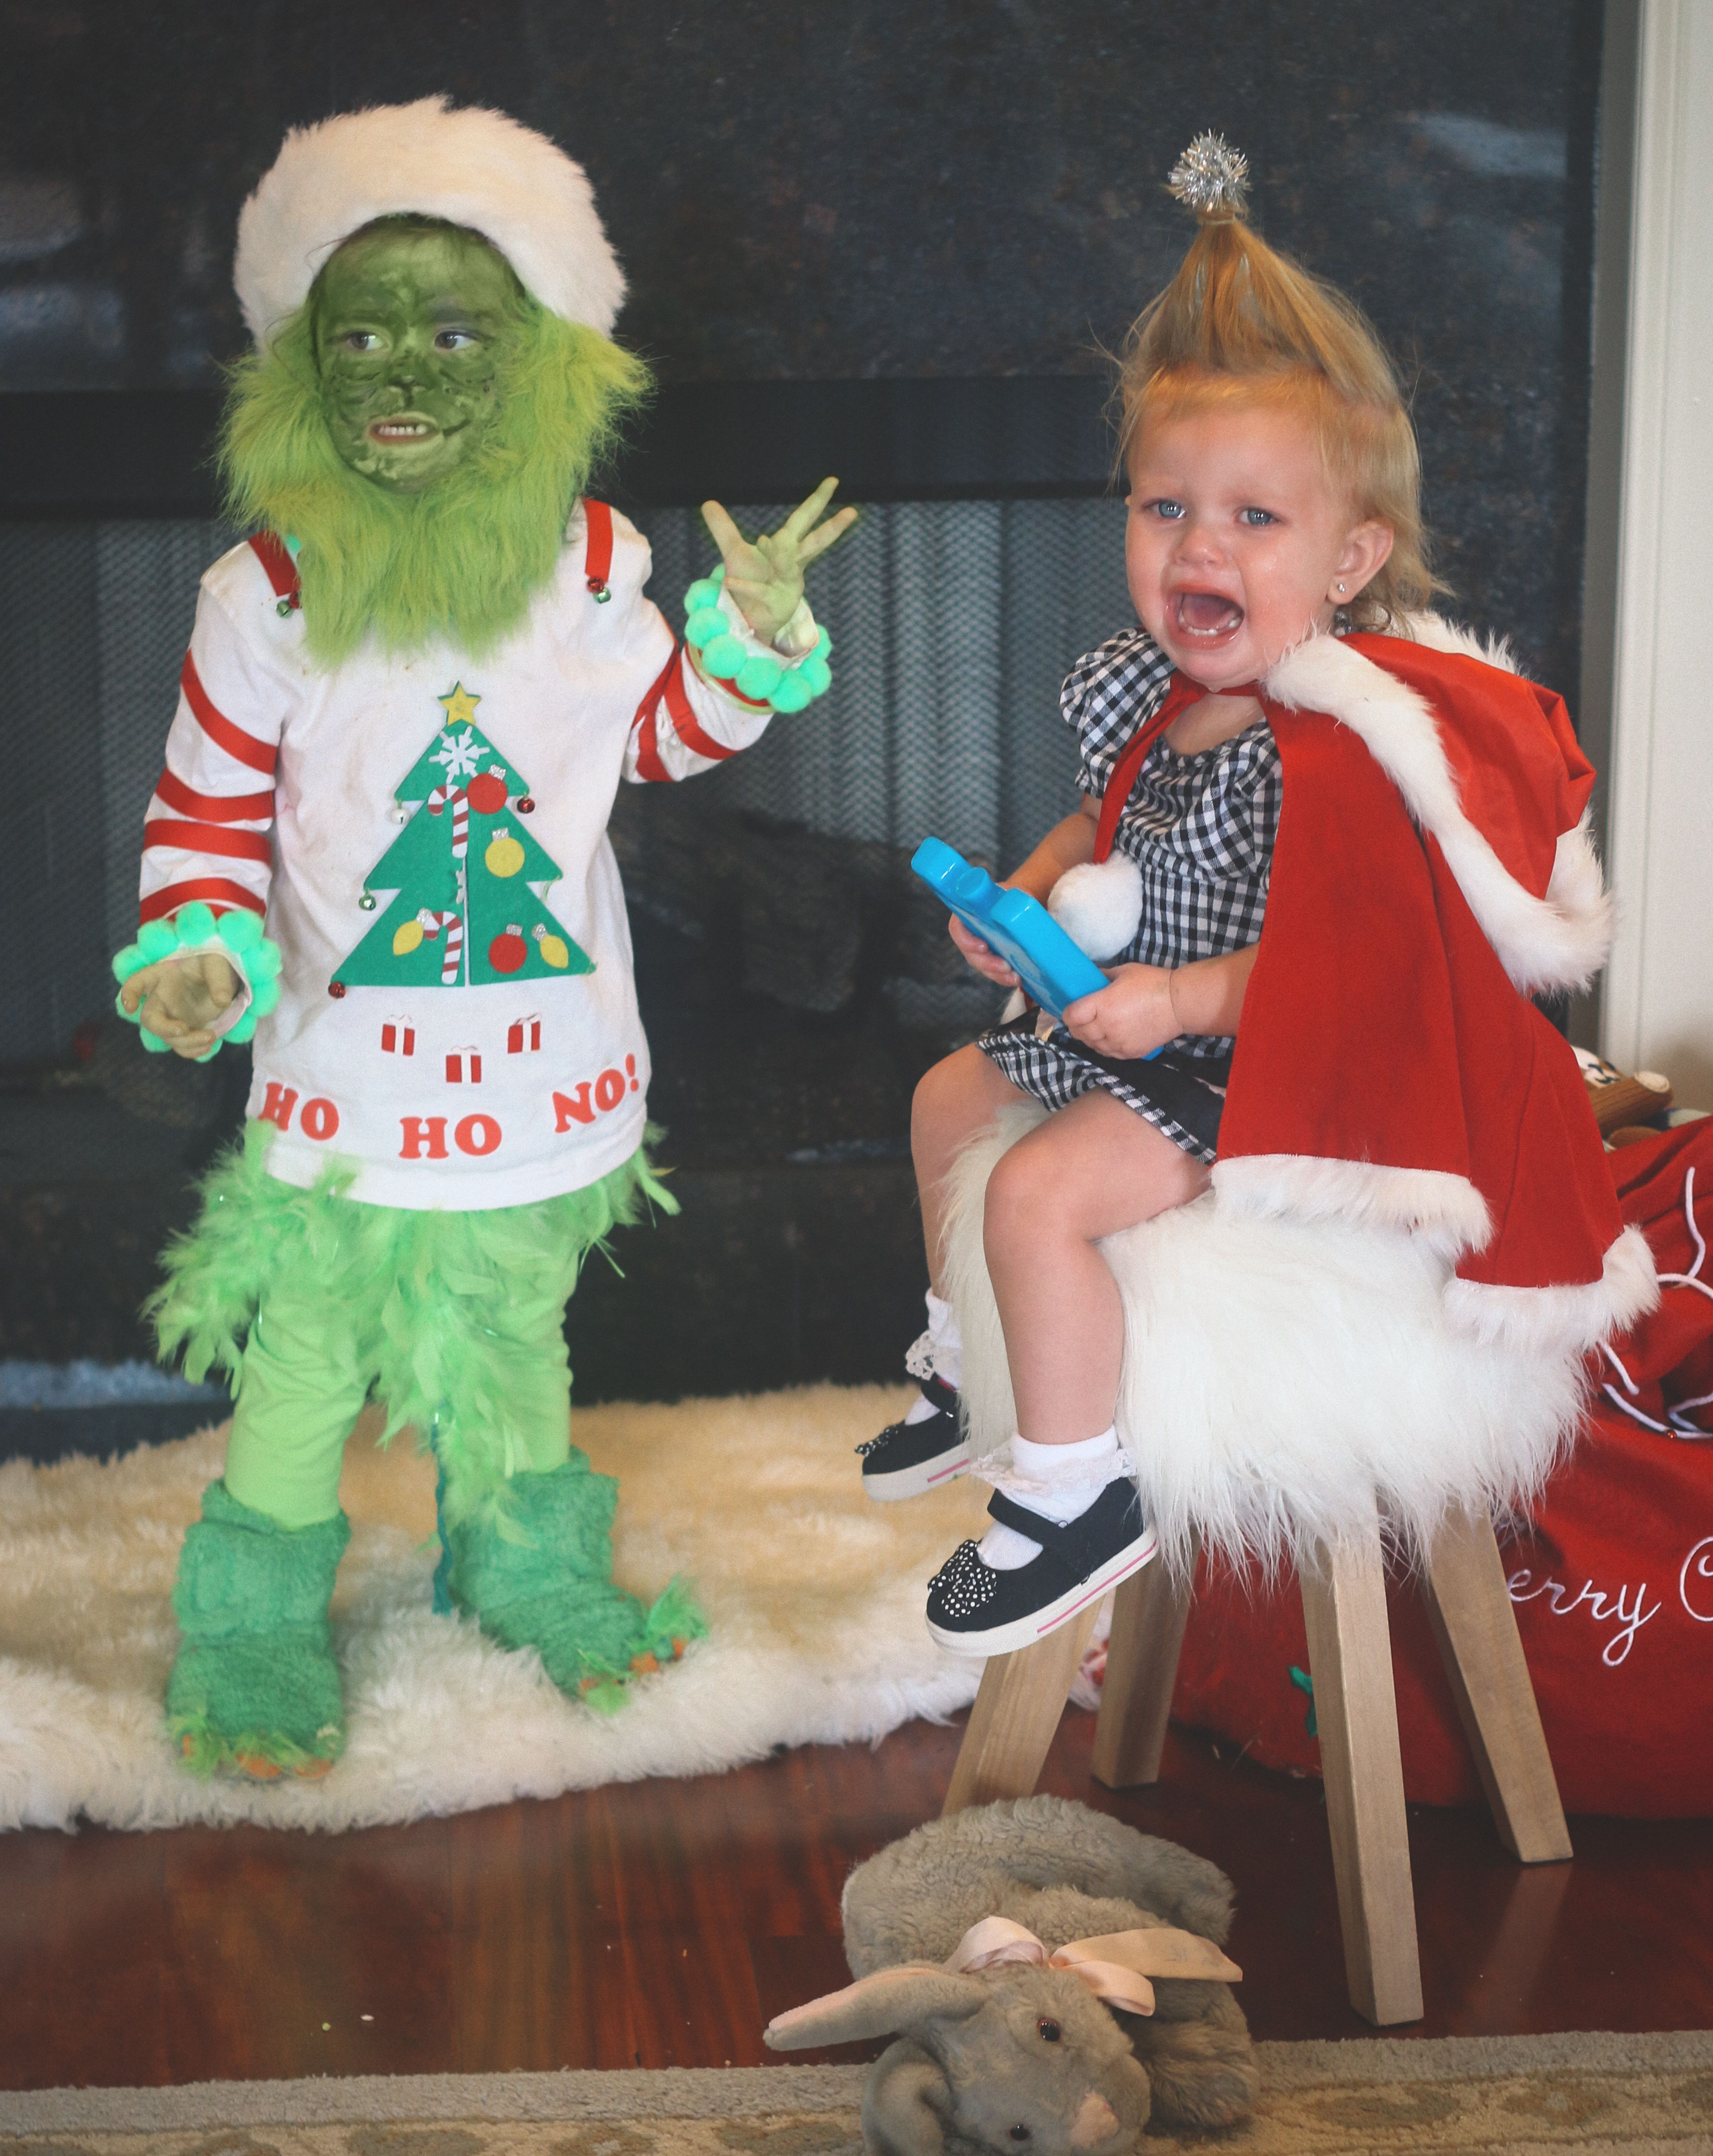 Toddler Grinch and Cindy Lou Who costume, sibling costumes